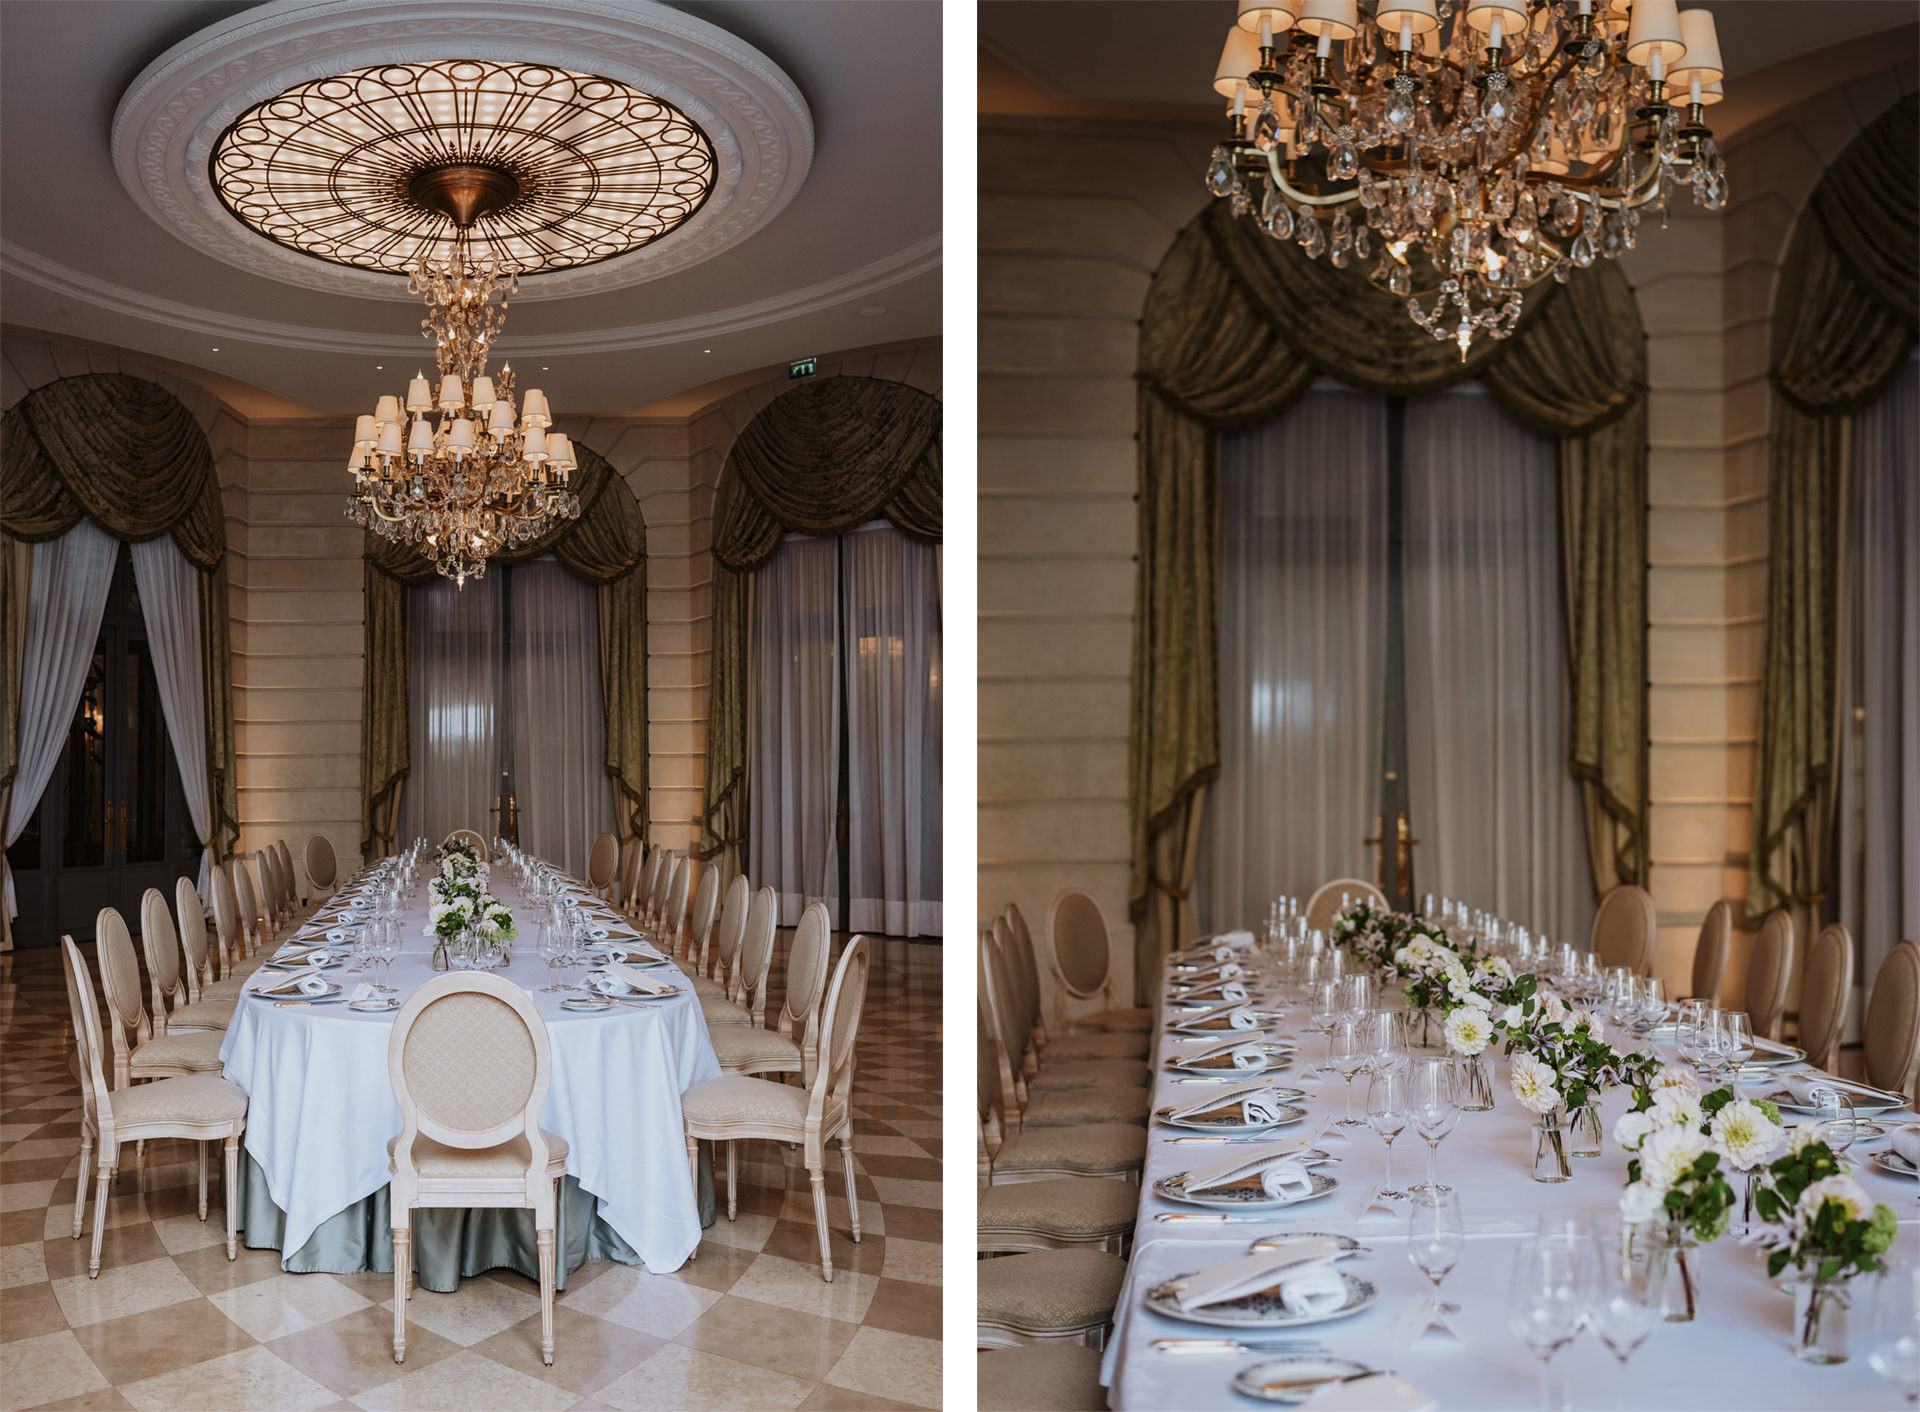 Hotel Ritz Paris wedding